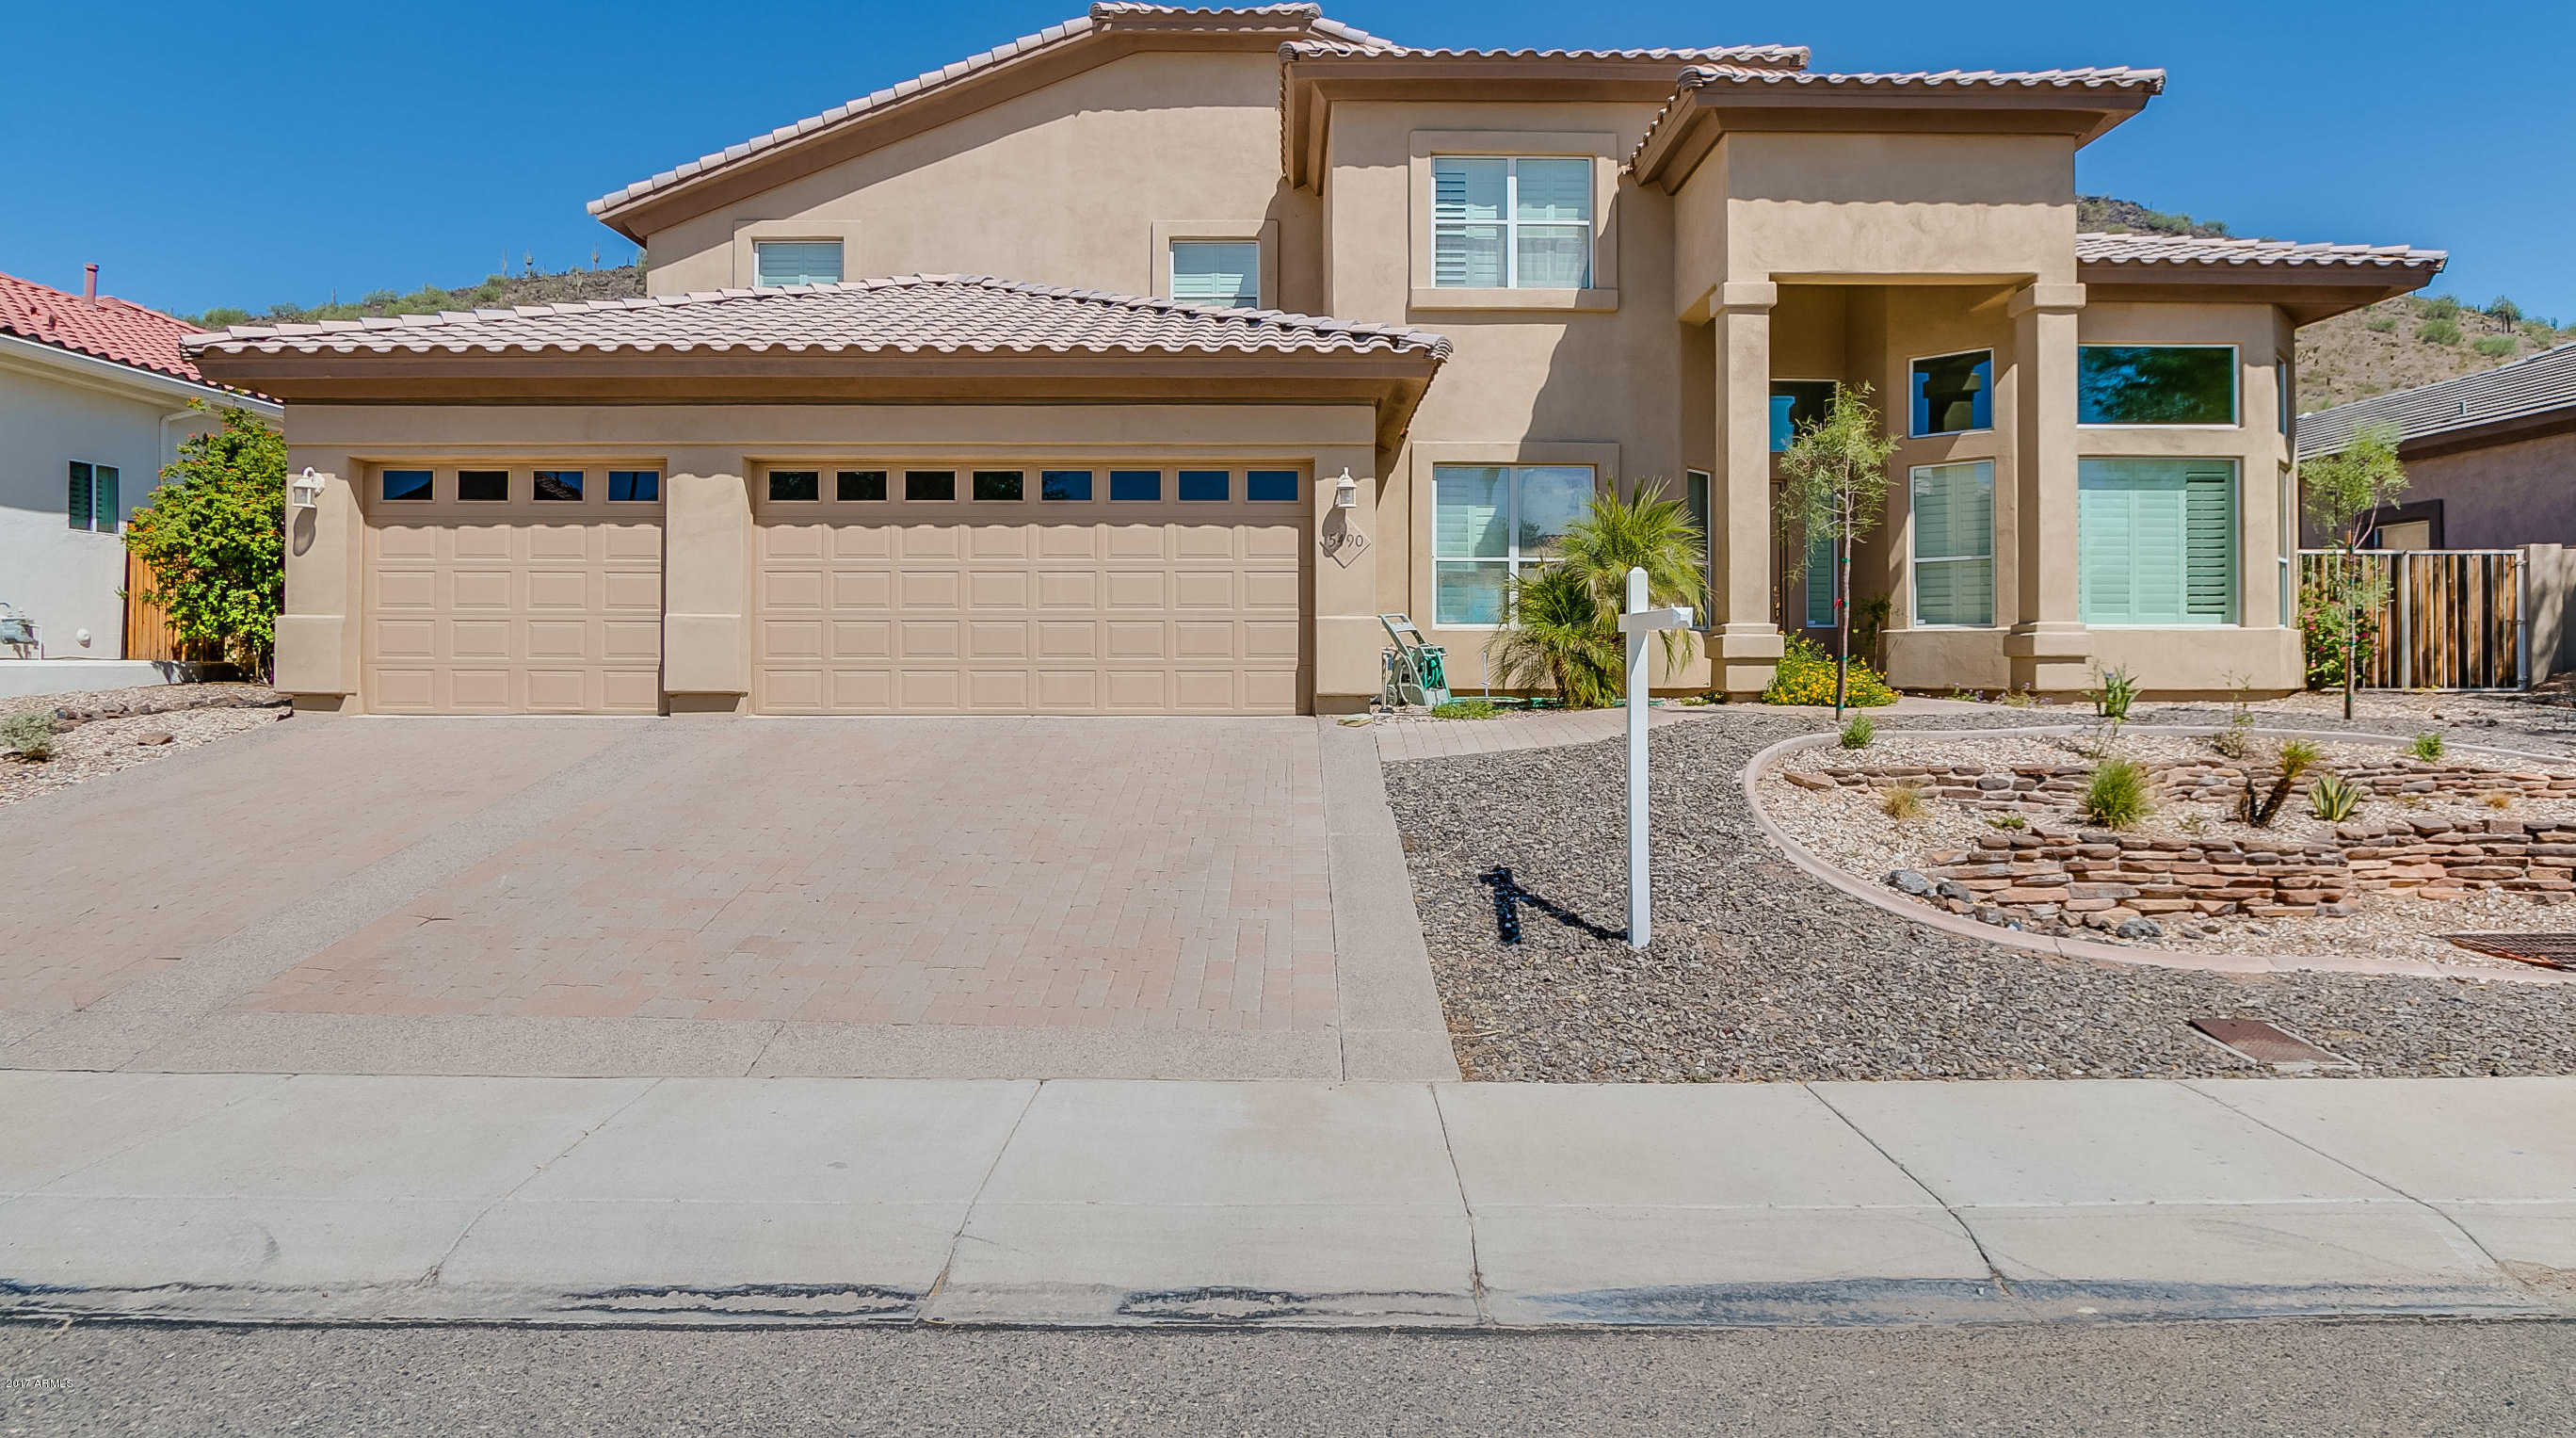 $569,000 - 5Br/3Ba - Home for Sale in Estates At Arrowhead Phase 1a, Glendale